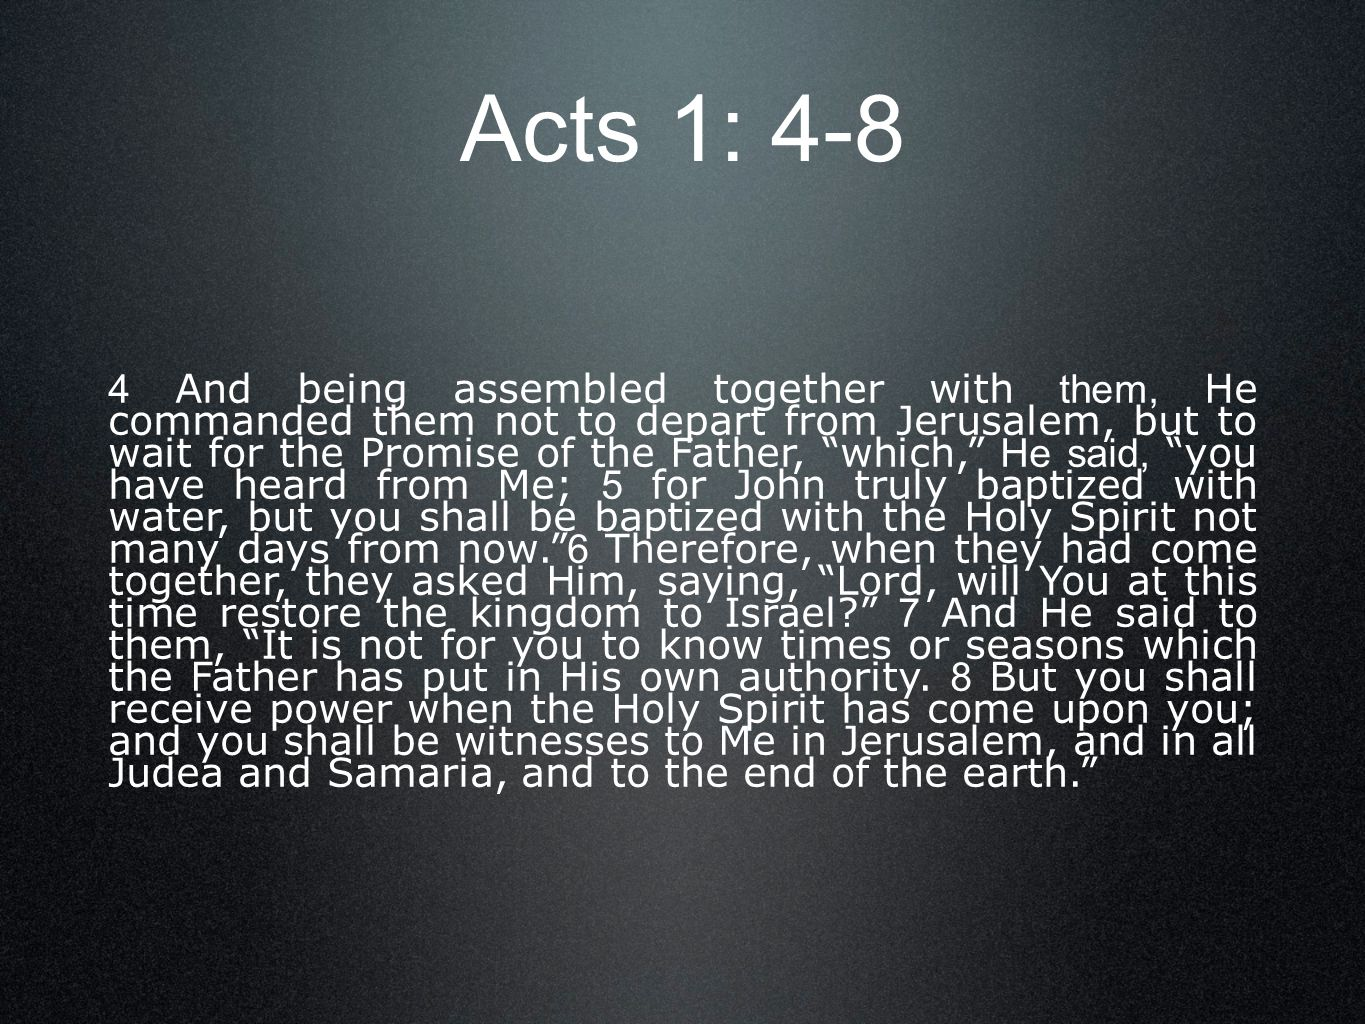 Acts 1: 4-8